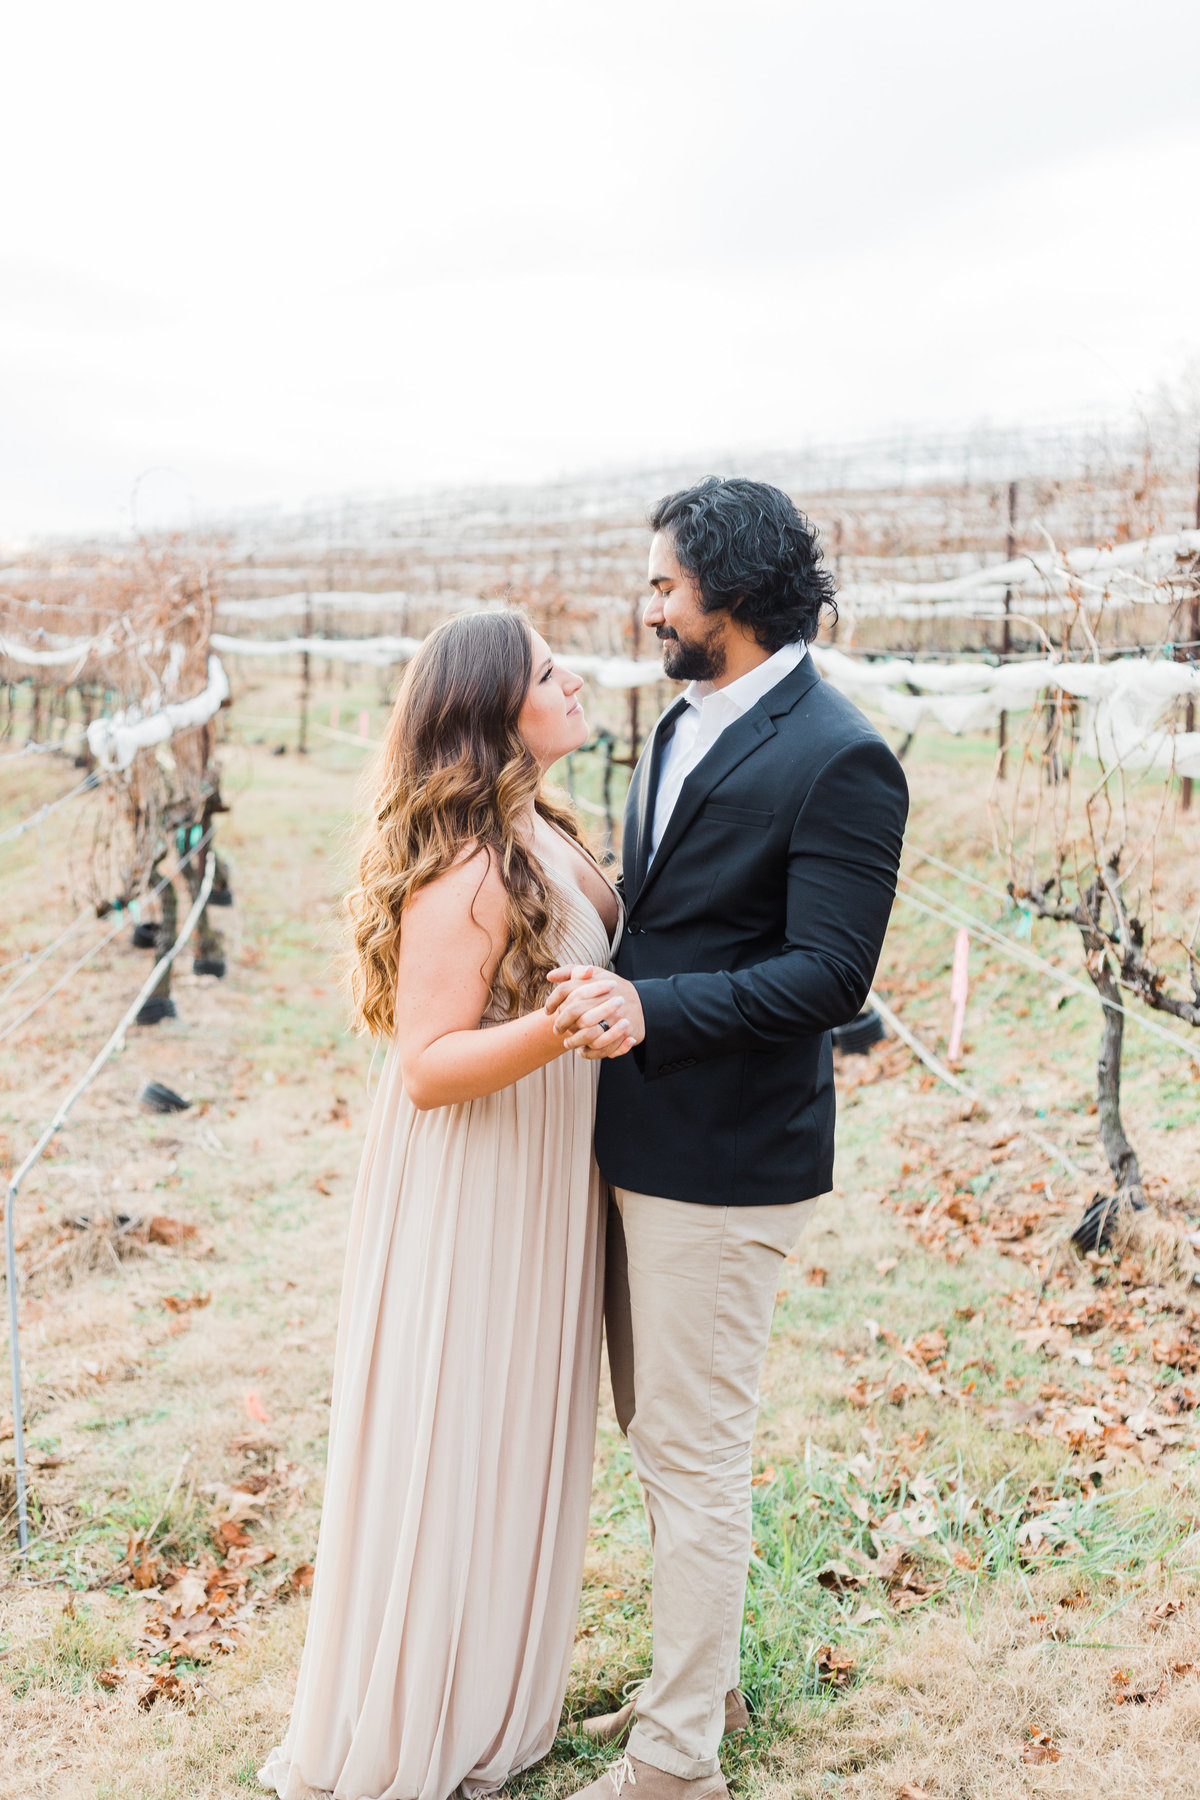 Motaluce Winery, Gainesville, GA Couple Engagement Anniversary Photography Session by Renee Jael-22